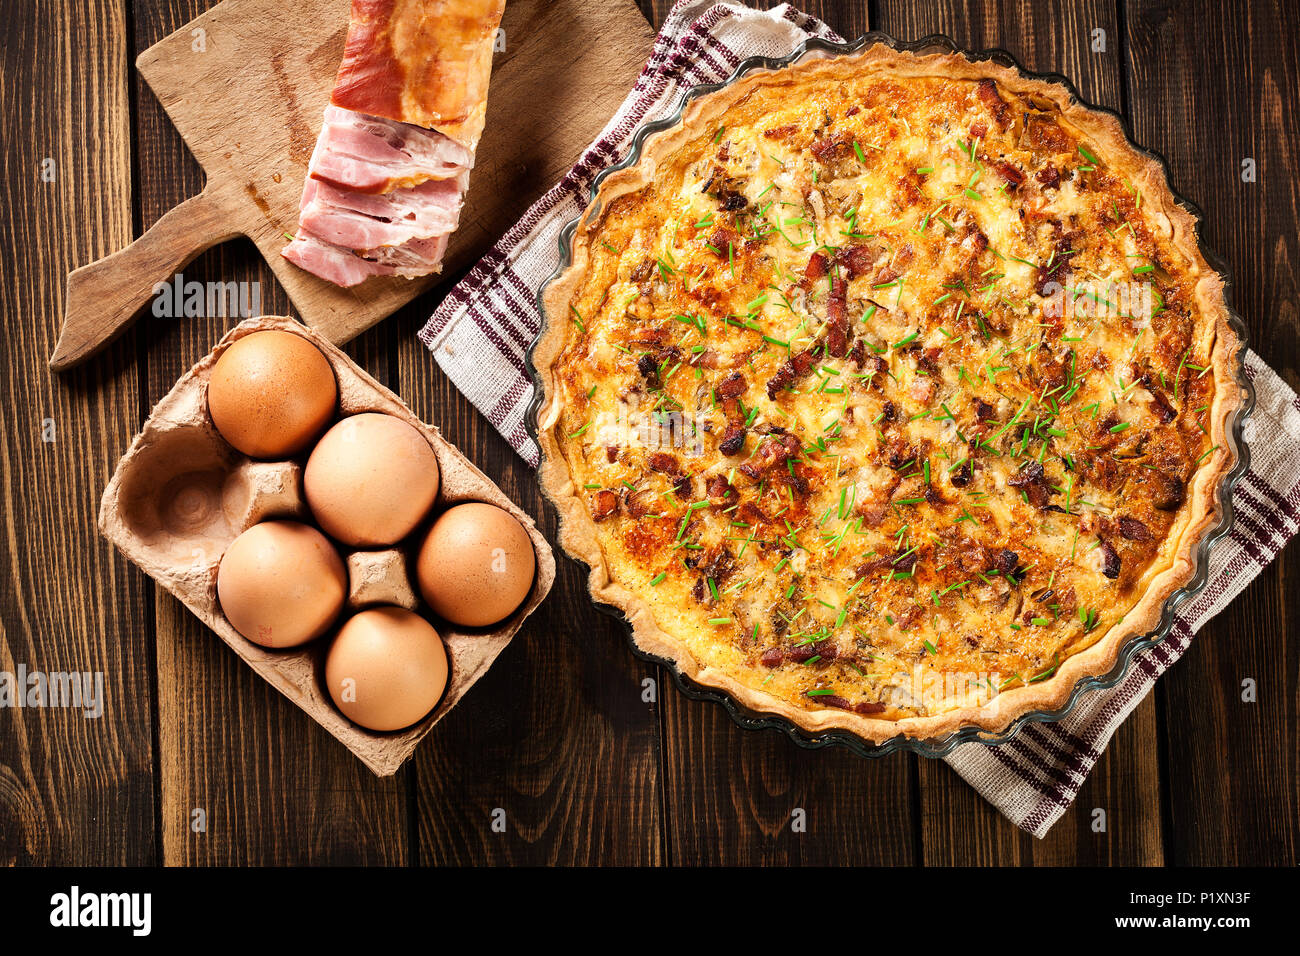 Homemade quiche lorraine with bacon and cheese. French cuisine - Stock Image